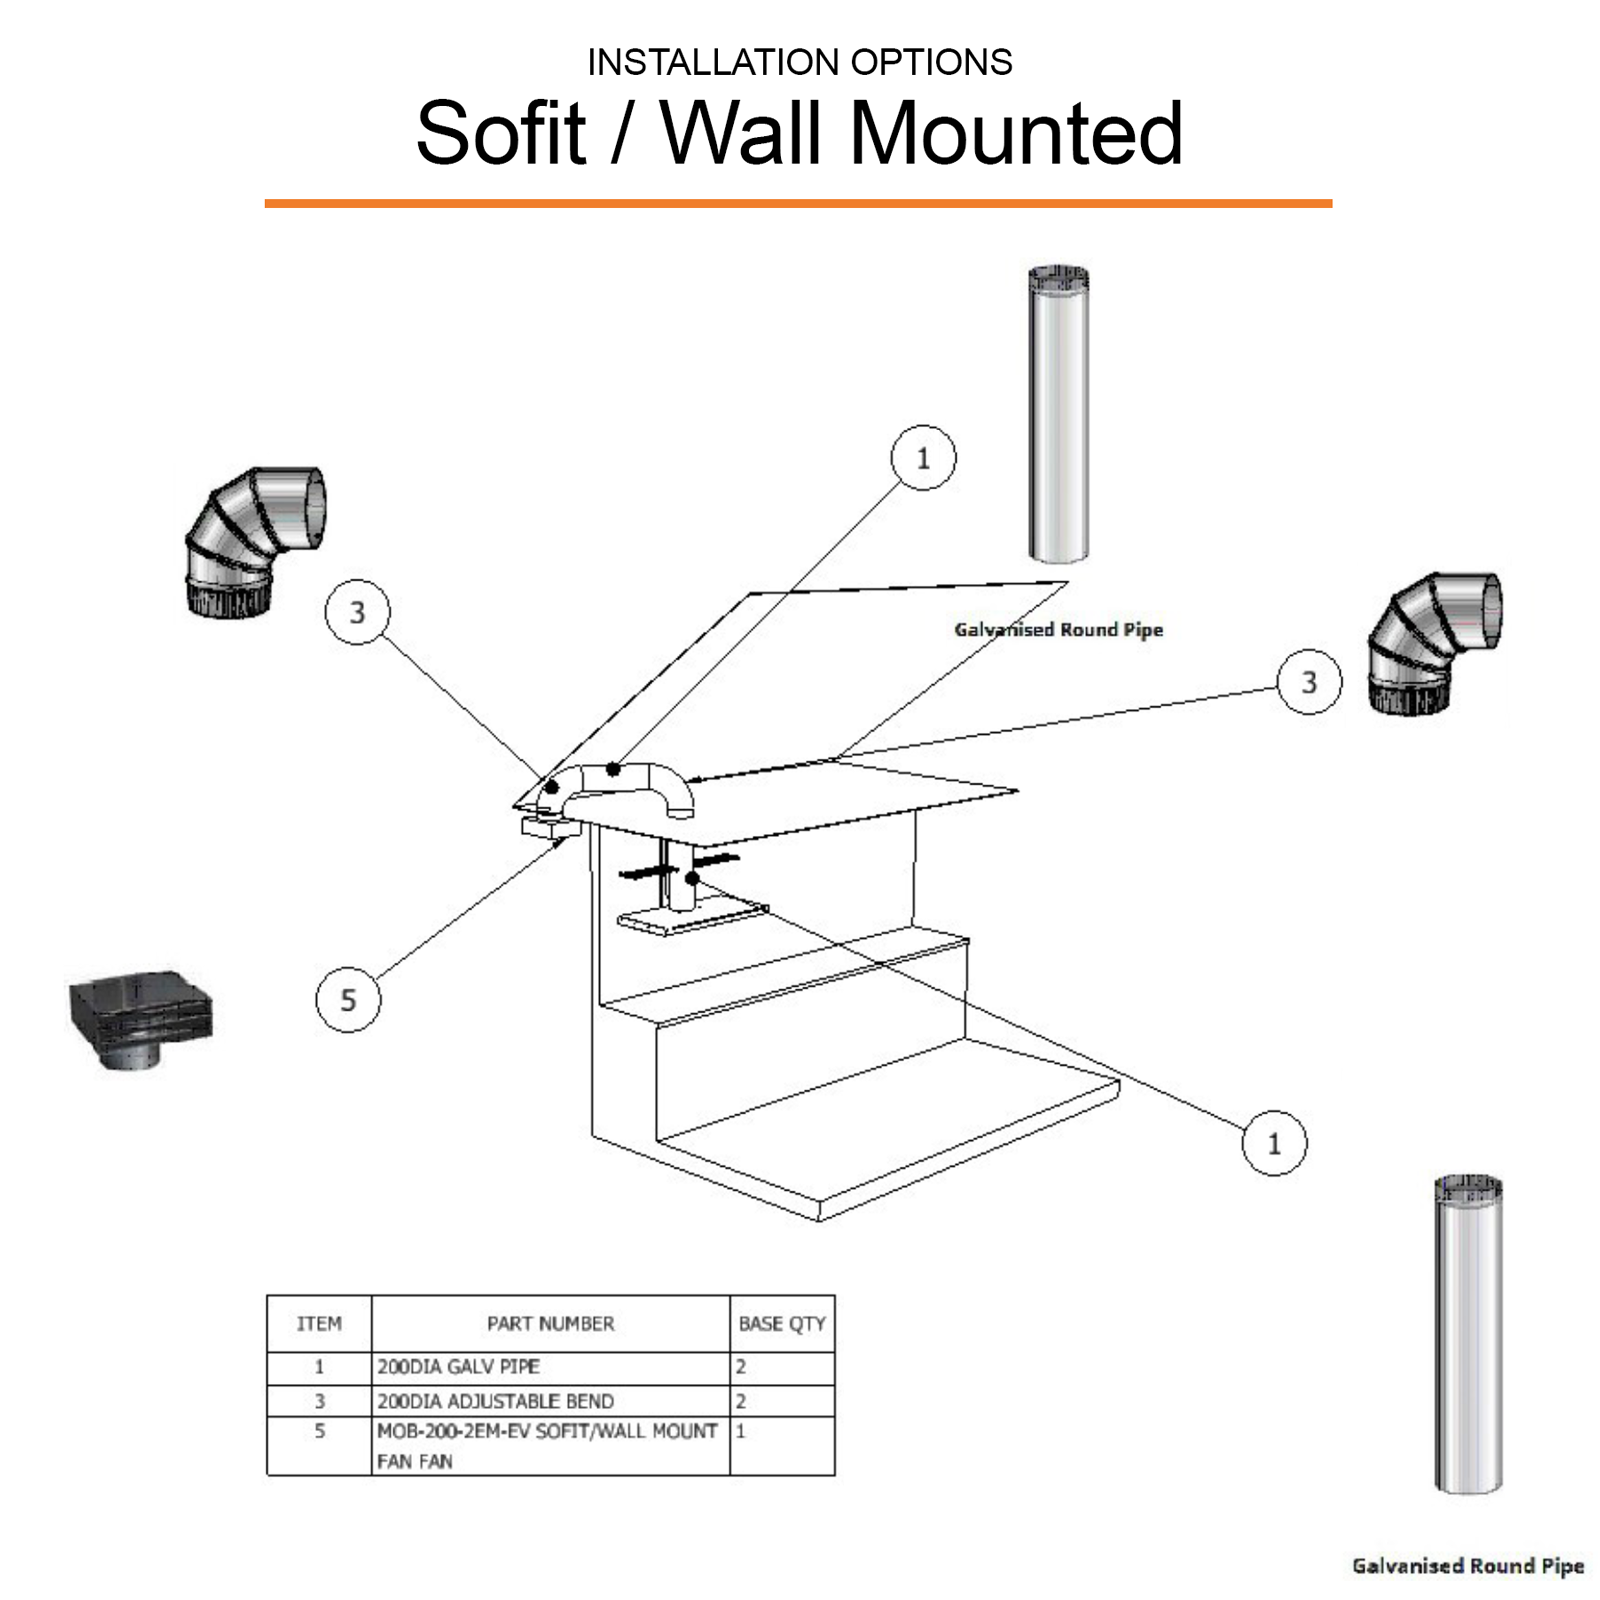 Range hood installation ducting options - sofit wall mounted